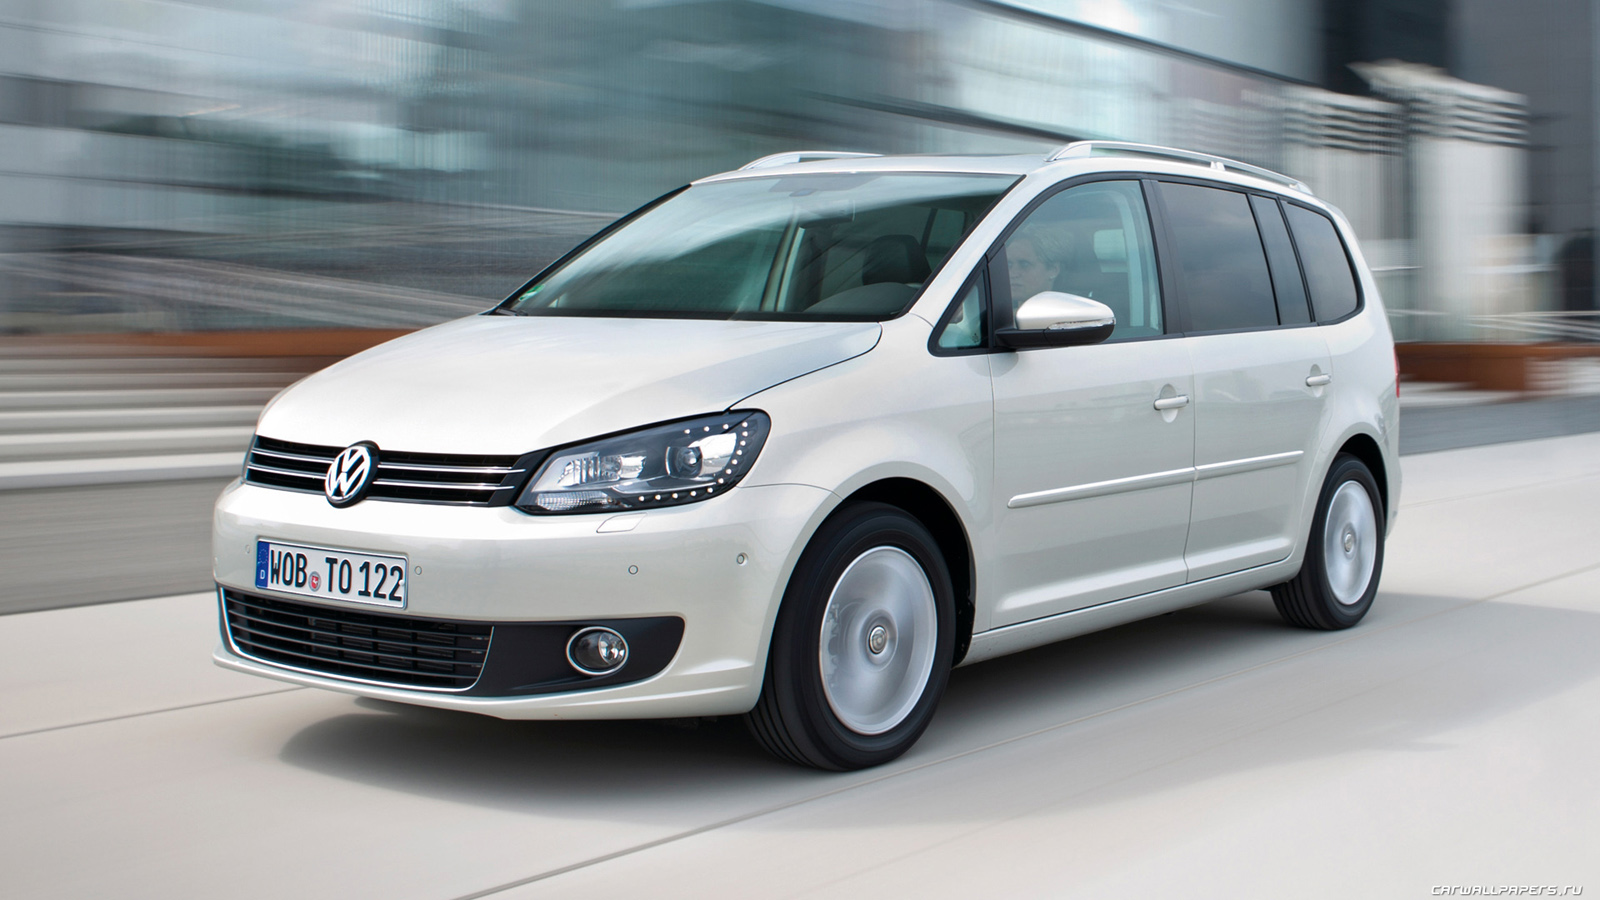 2012 volkswagen touran 1t pictures information and specs auto. Black Bedroom Furniture Sets. Home Design Ideas